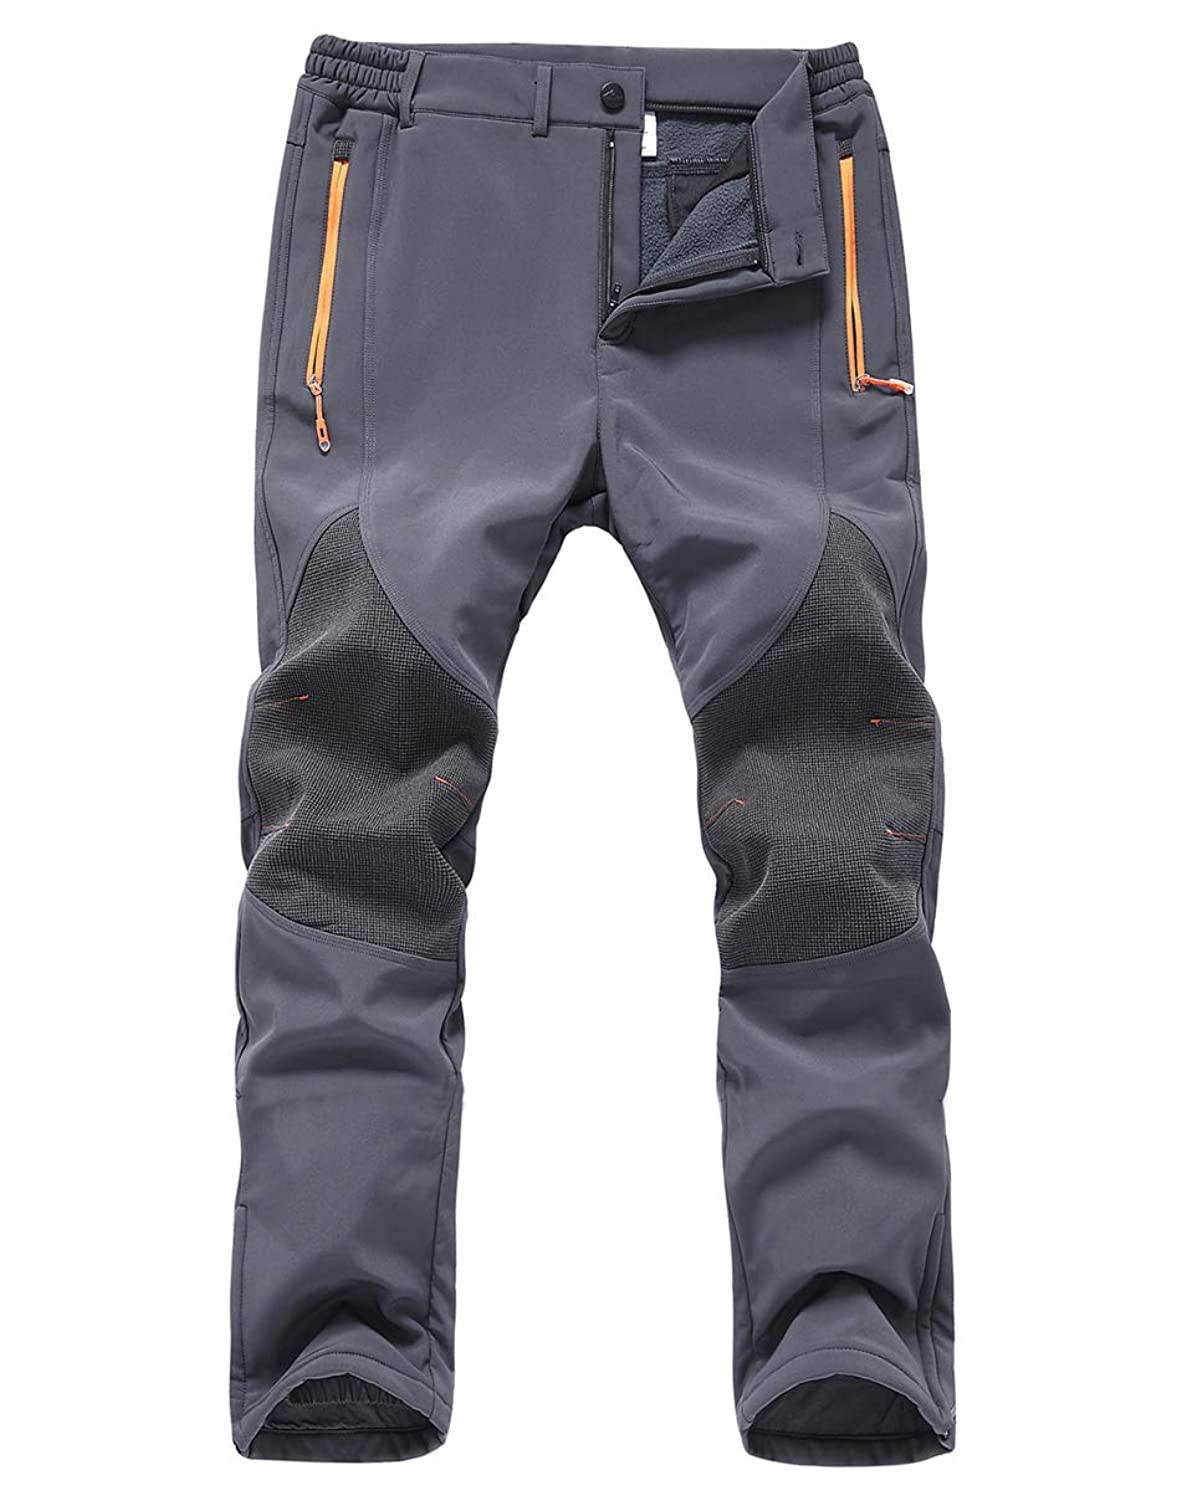 Gash Hao Mens Snow Ski Waterproof Softshell Pants Outdoor Hiking Fleece Lined Zipper Bottom Leg